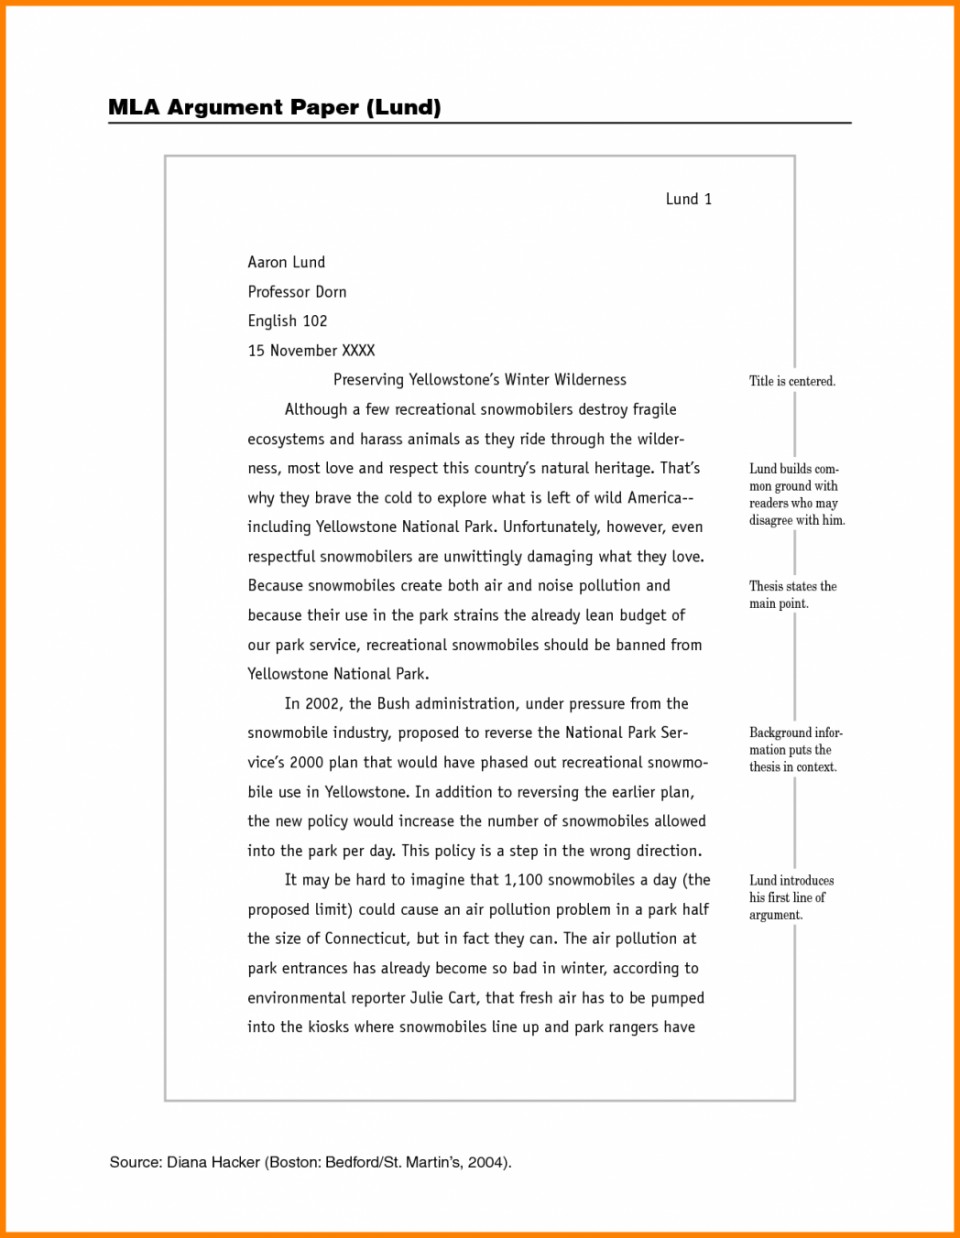 009 Research Paper Asa Format Example How To Write Sample Ledger For Title Page Inspirational Apa Style Summary Singular 960